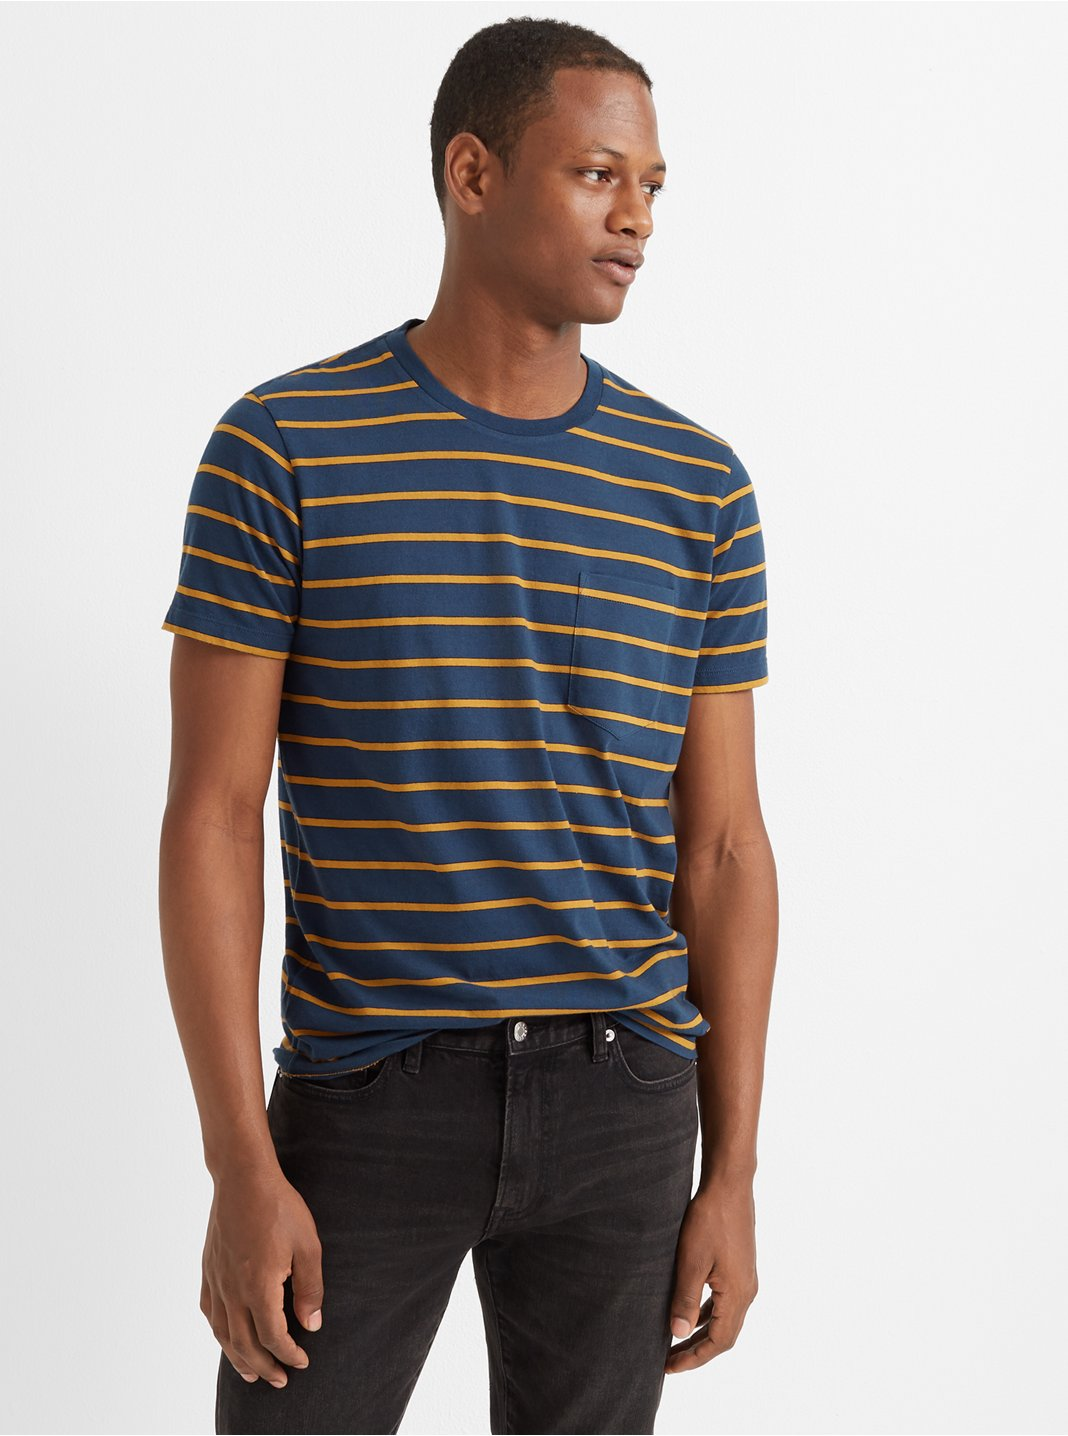 Williams Stripe Pocket Tee